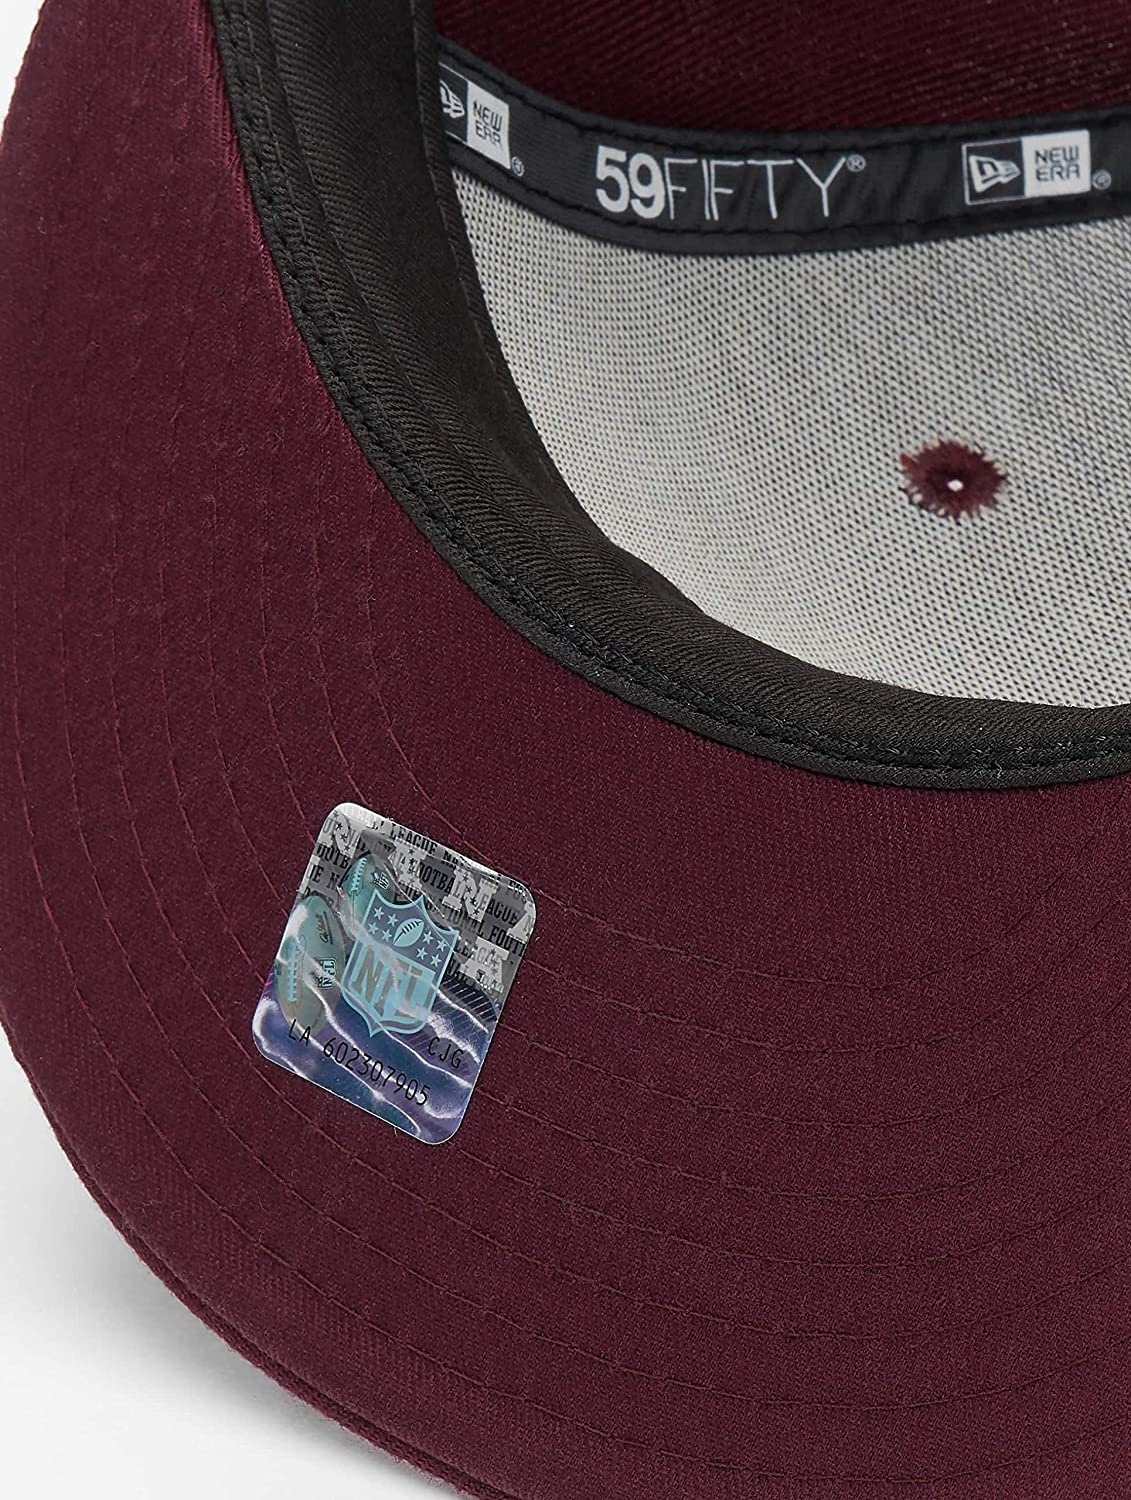 New Era Arizona Cardinals Maroon Poly Tone Cap 59fifty Fitted Limited Edition